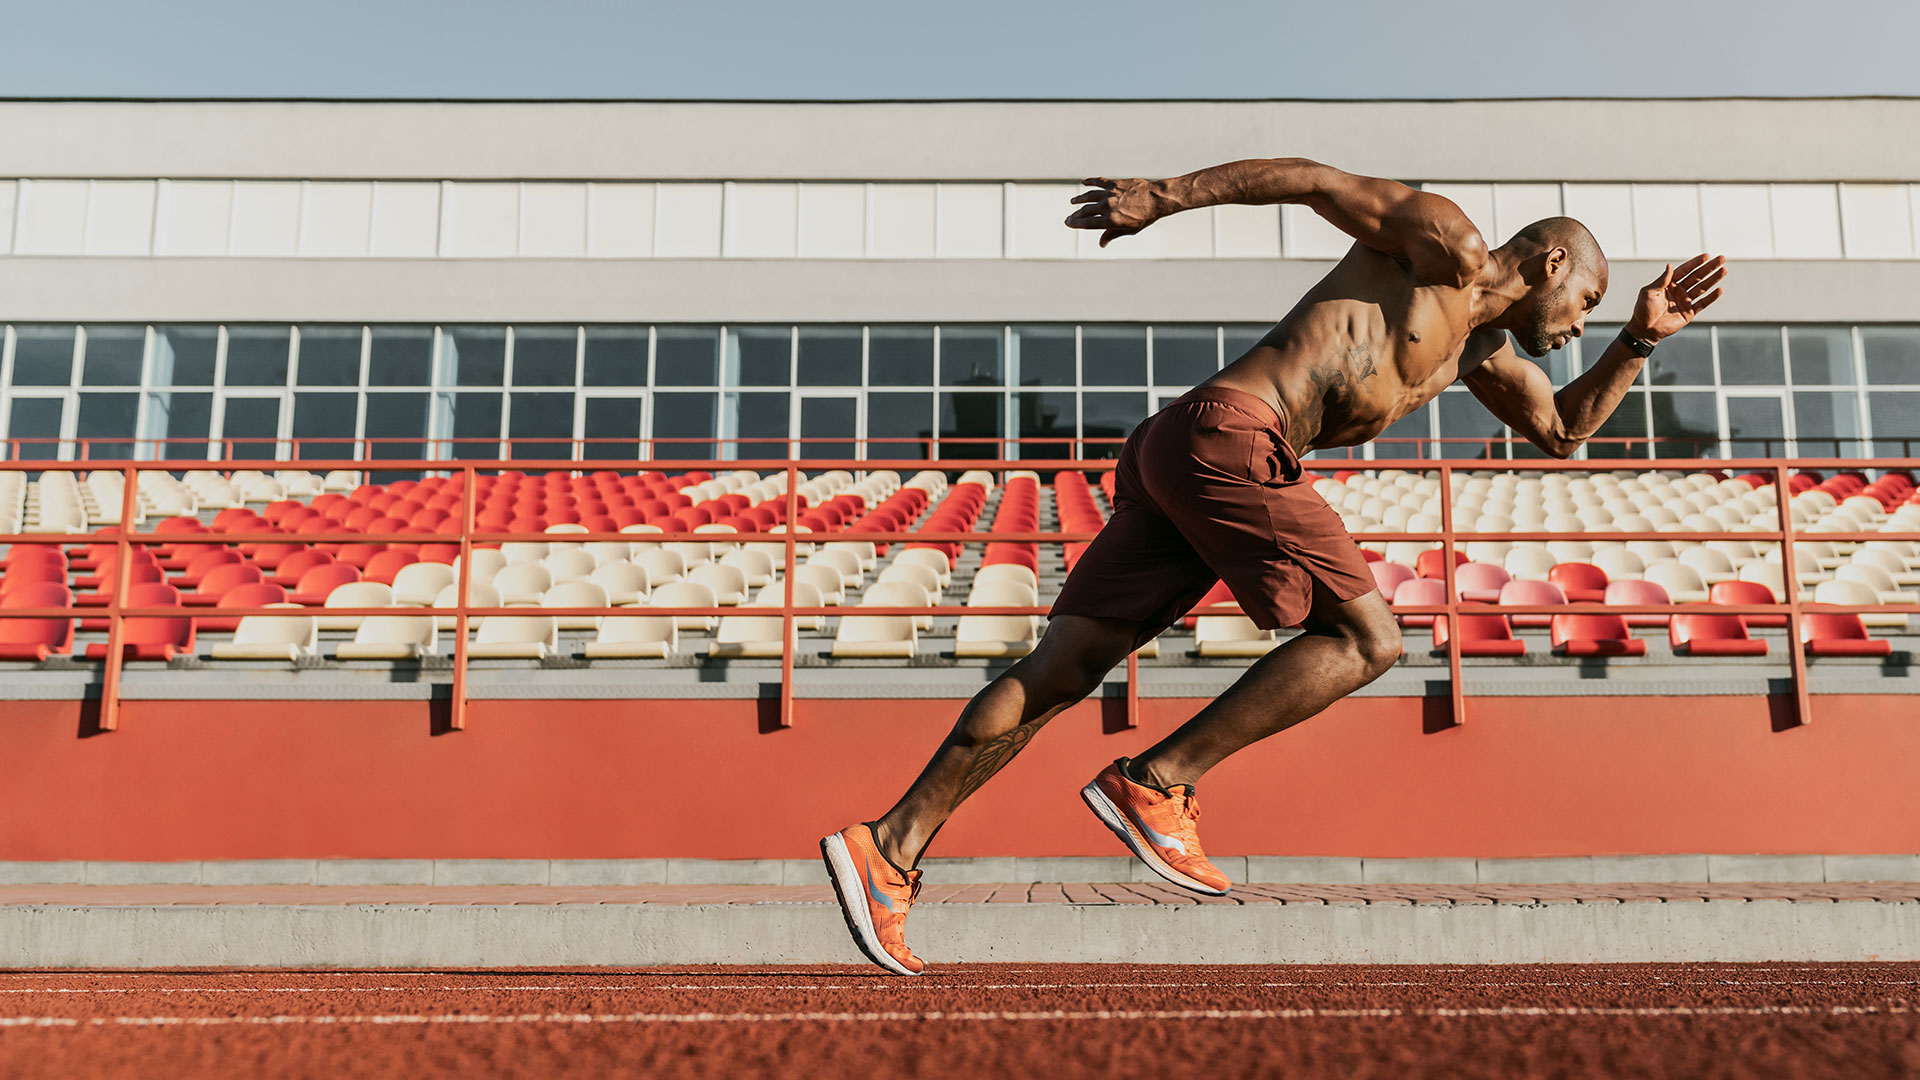 The Best Sprint Workouts to Get Faster